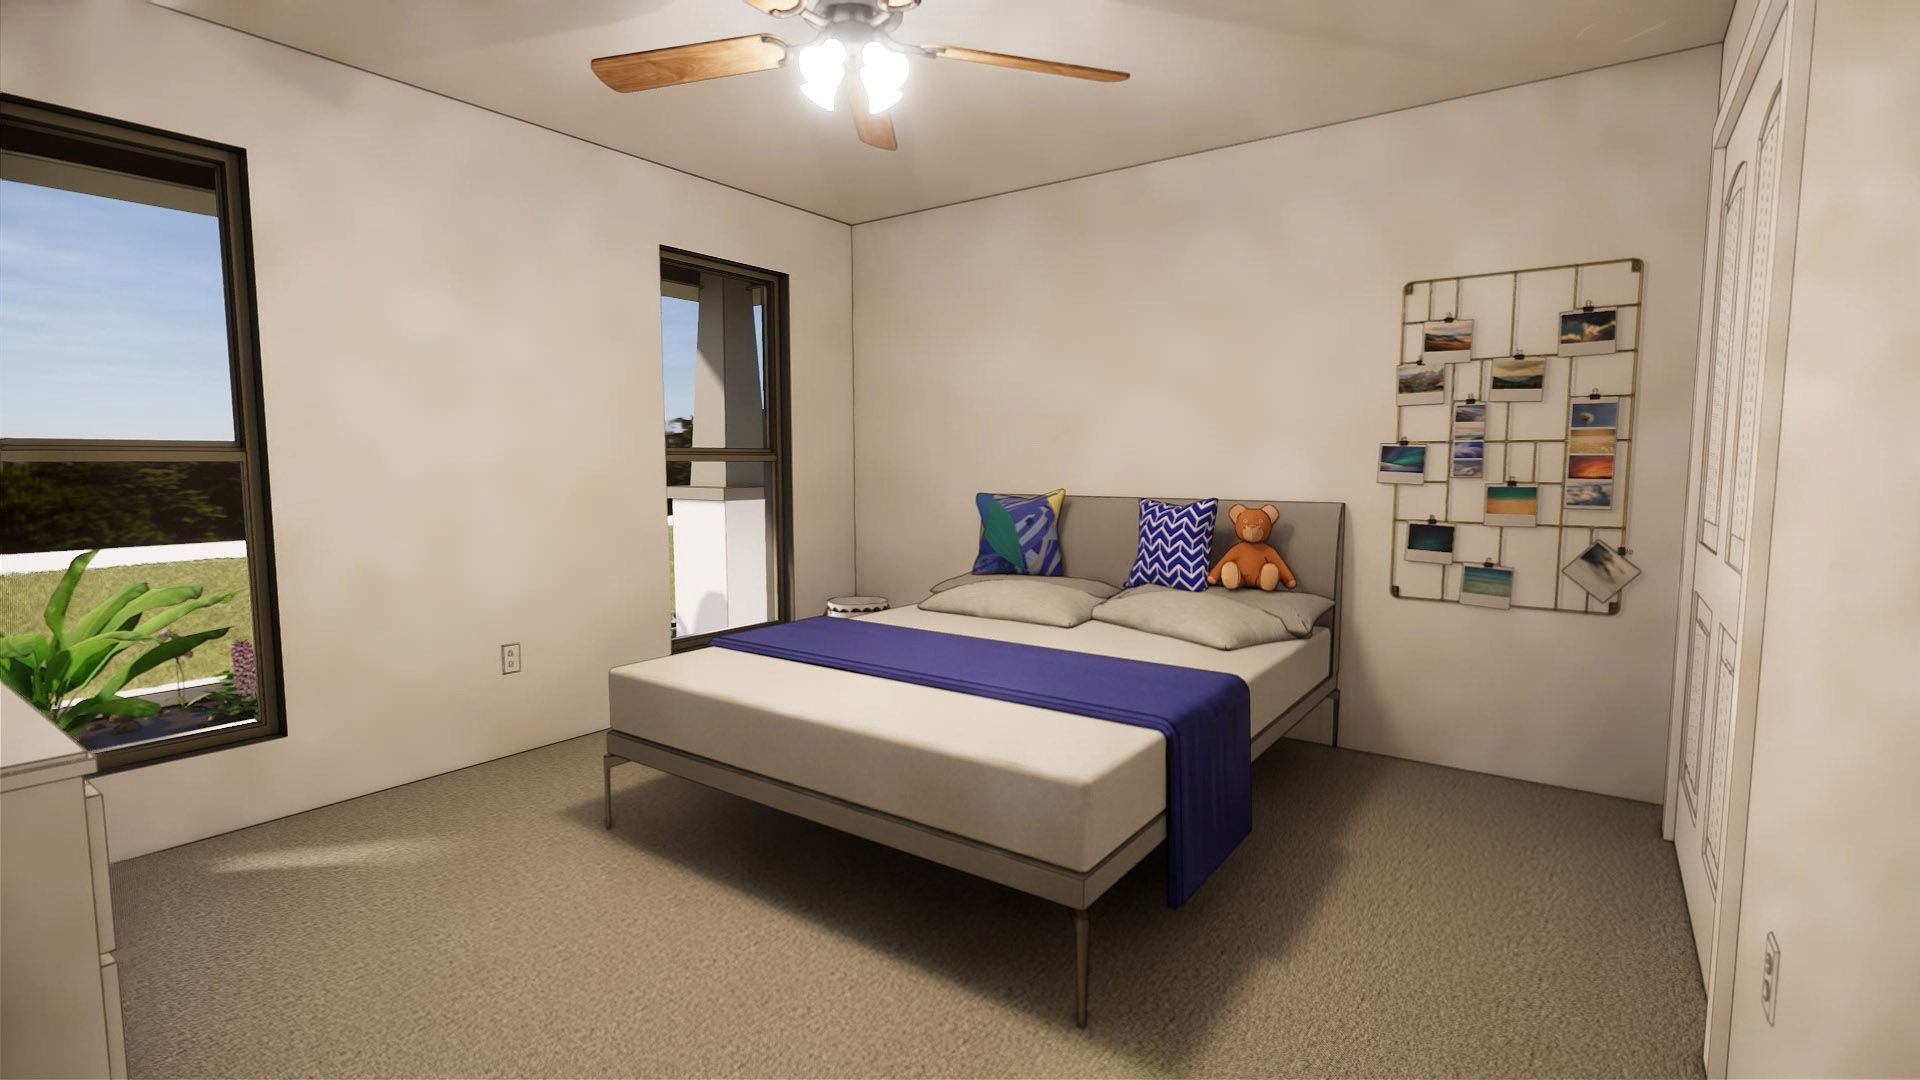 Bedroom featured in the Adalynn By Betenbough Homes in Midland-Odessa, TX